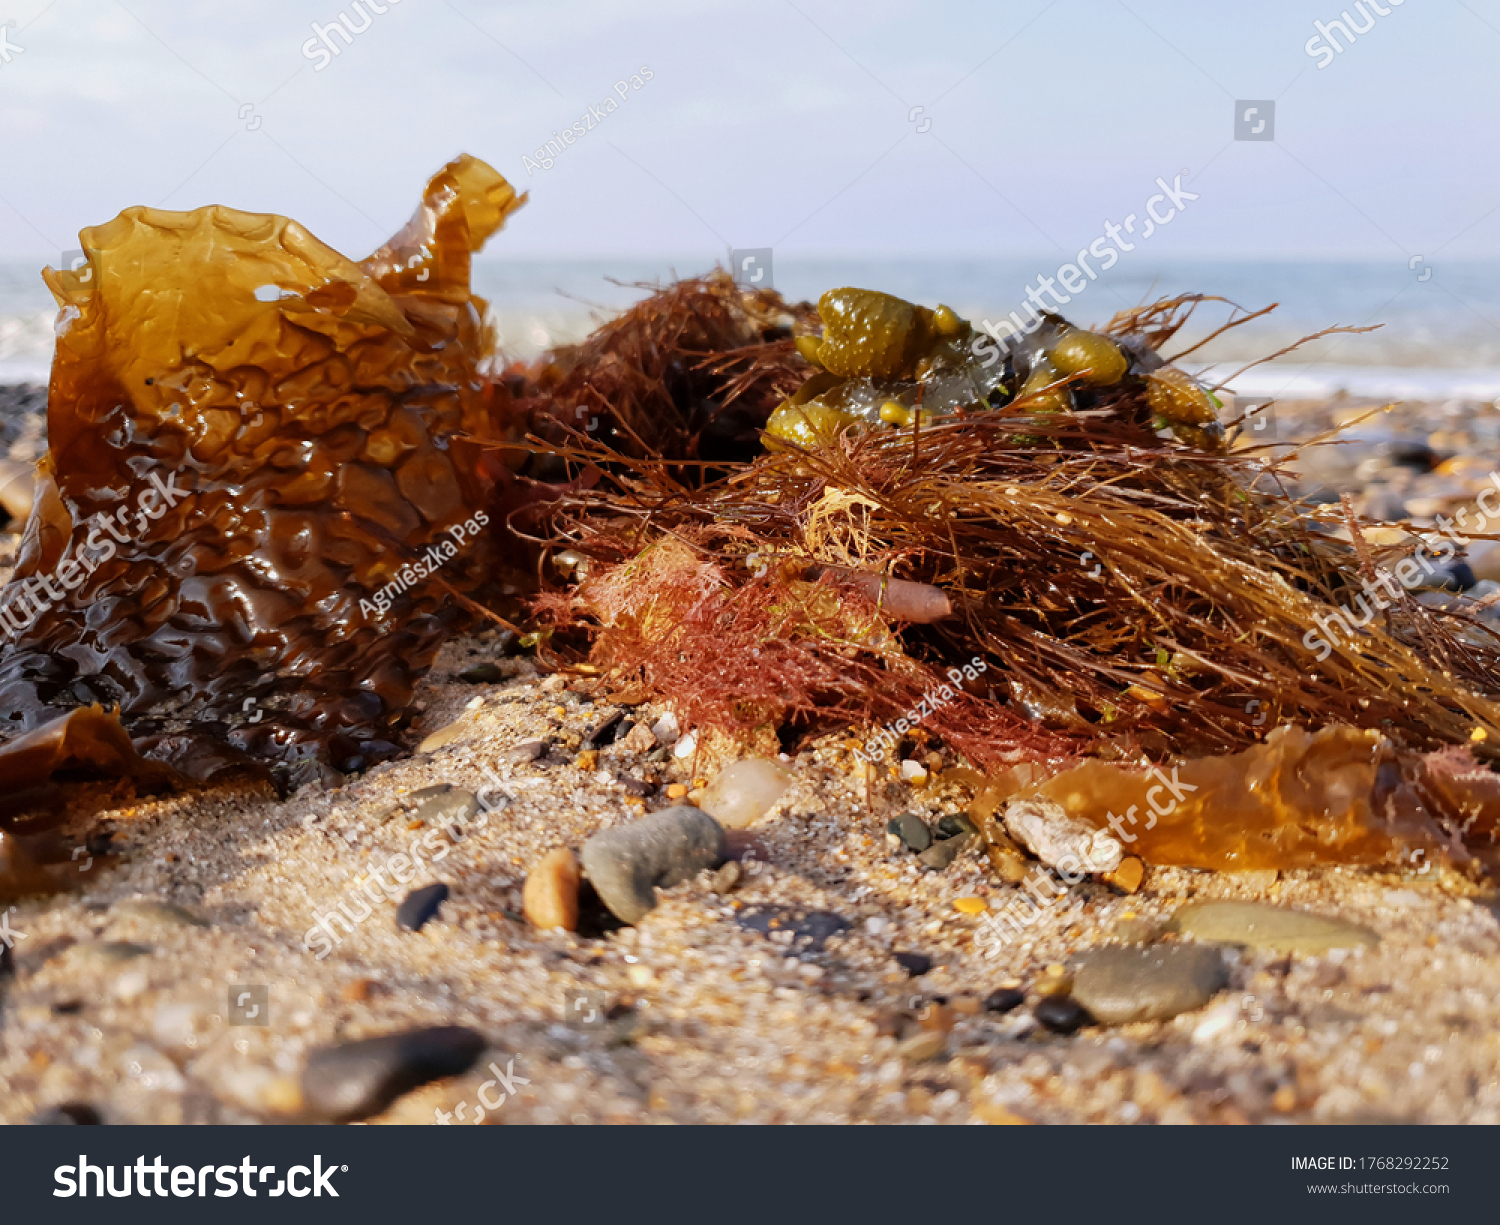 Brown seaweeds washed up on the beach. Close up view. Selective focus. Blurry background with the Irish Sea.